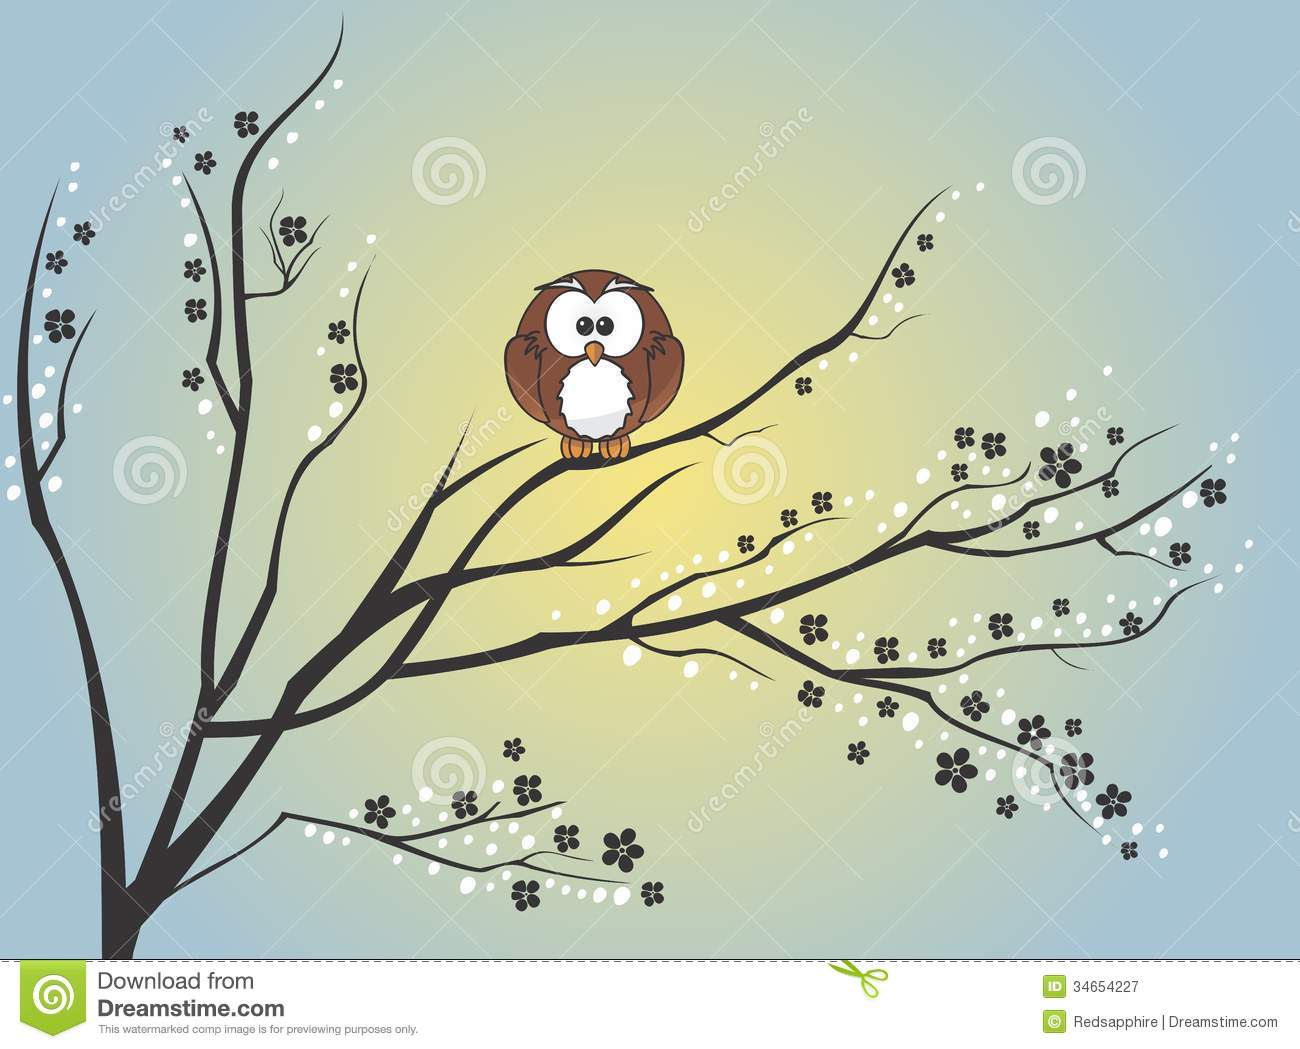 Owl Sitting On Tree Stock Illustration Illustration Of Line 34654227 Html5 available for mobile devices. dreamstime com